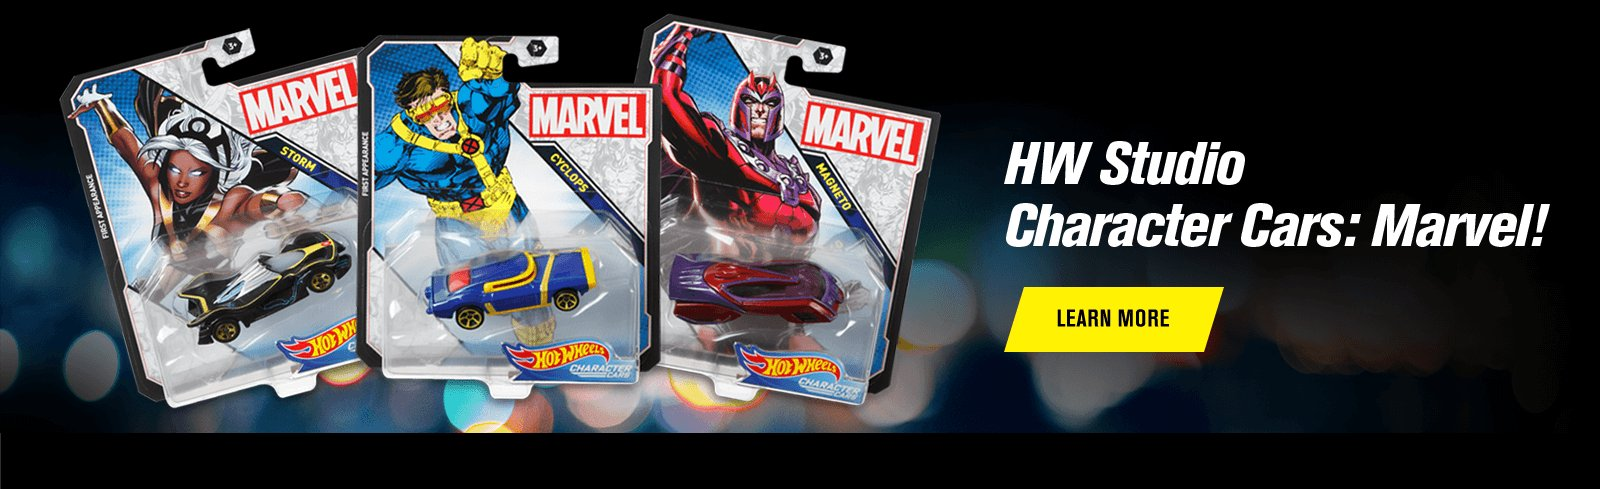 HW Studio Character Cars: Marvel!